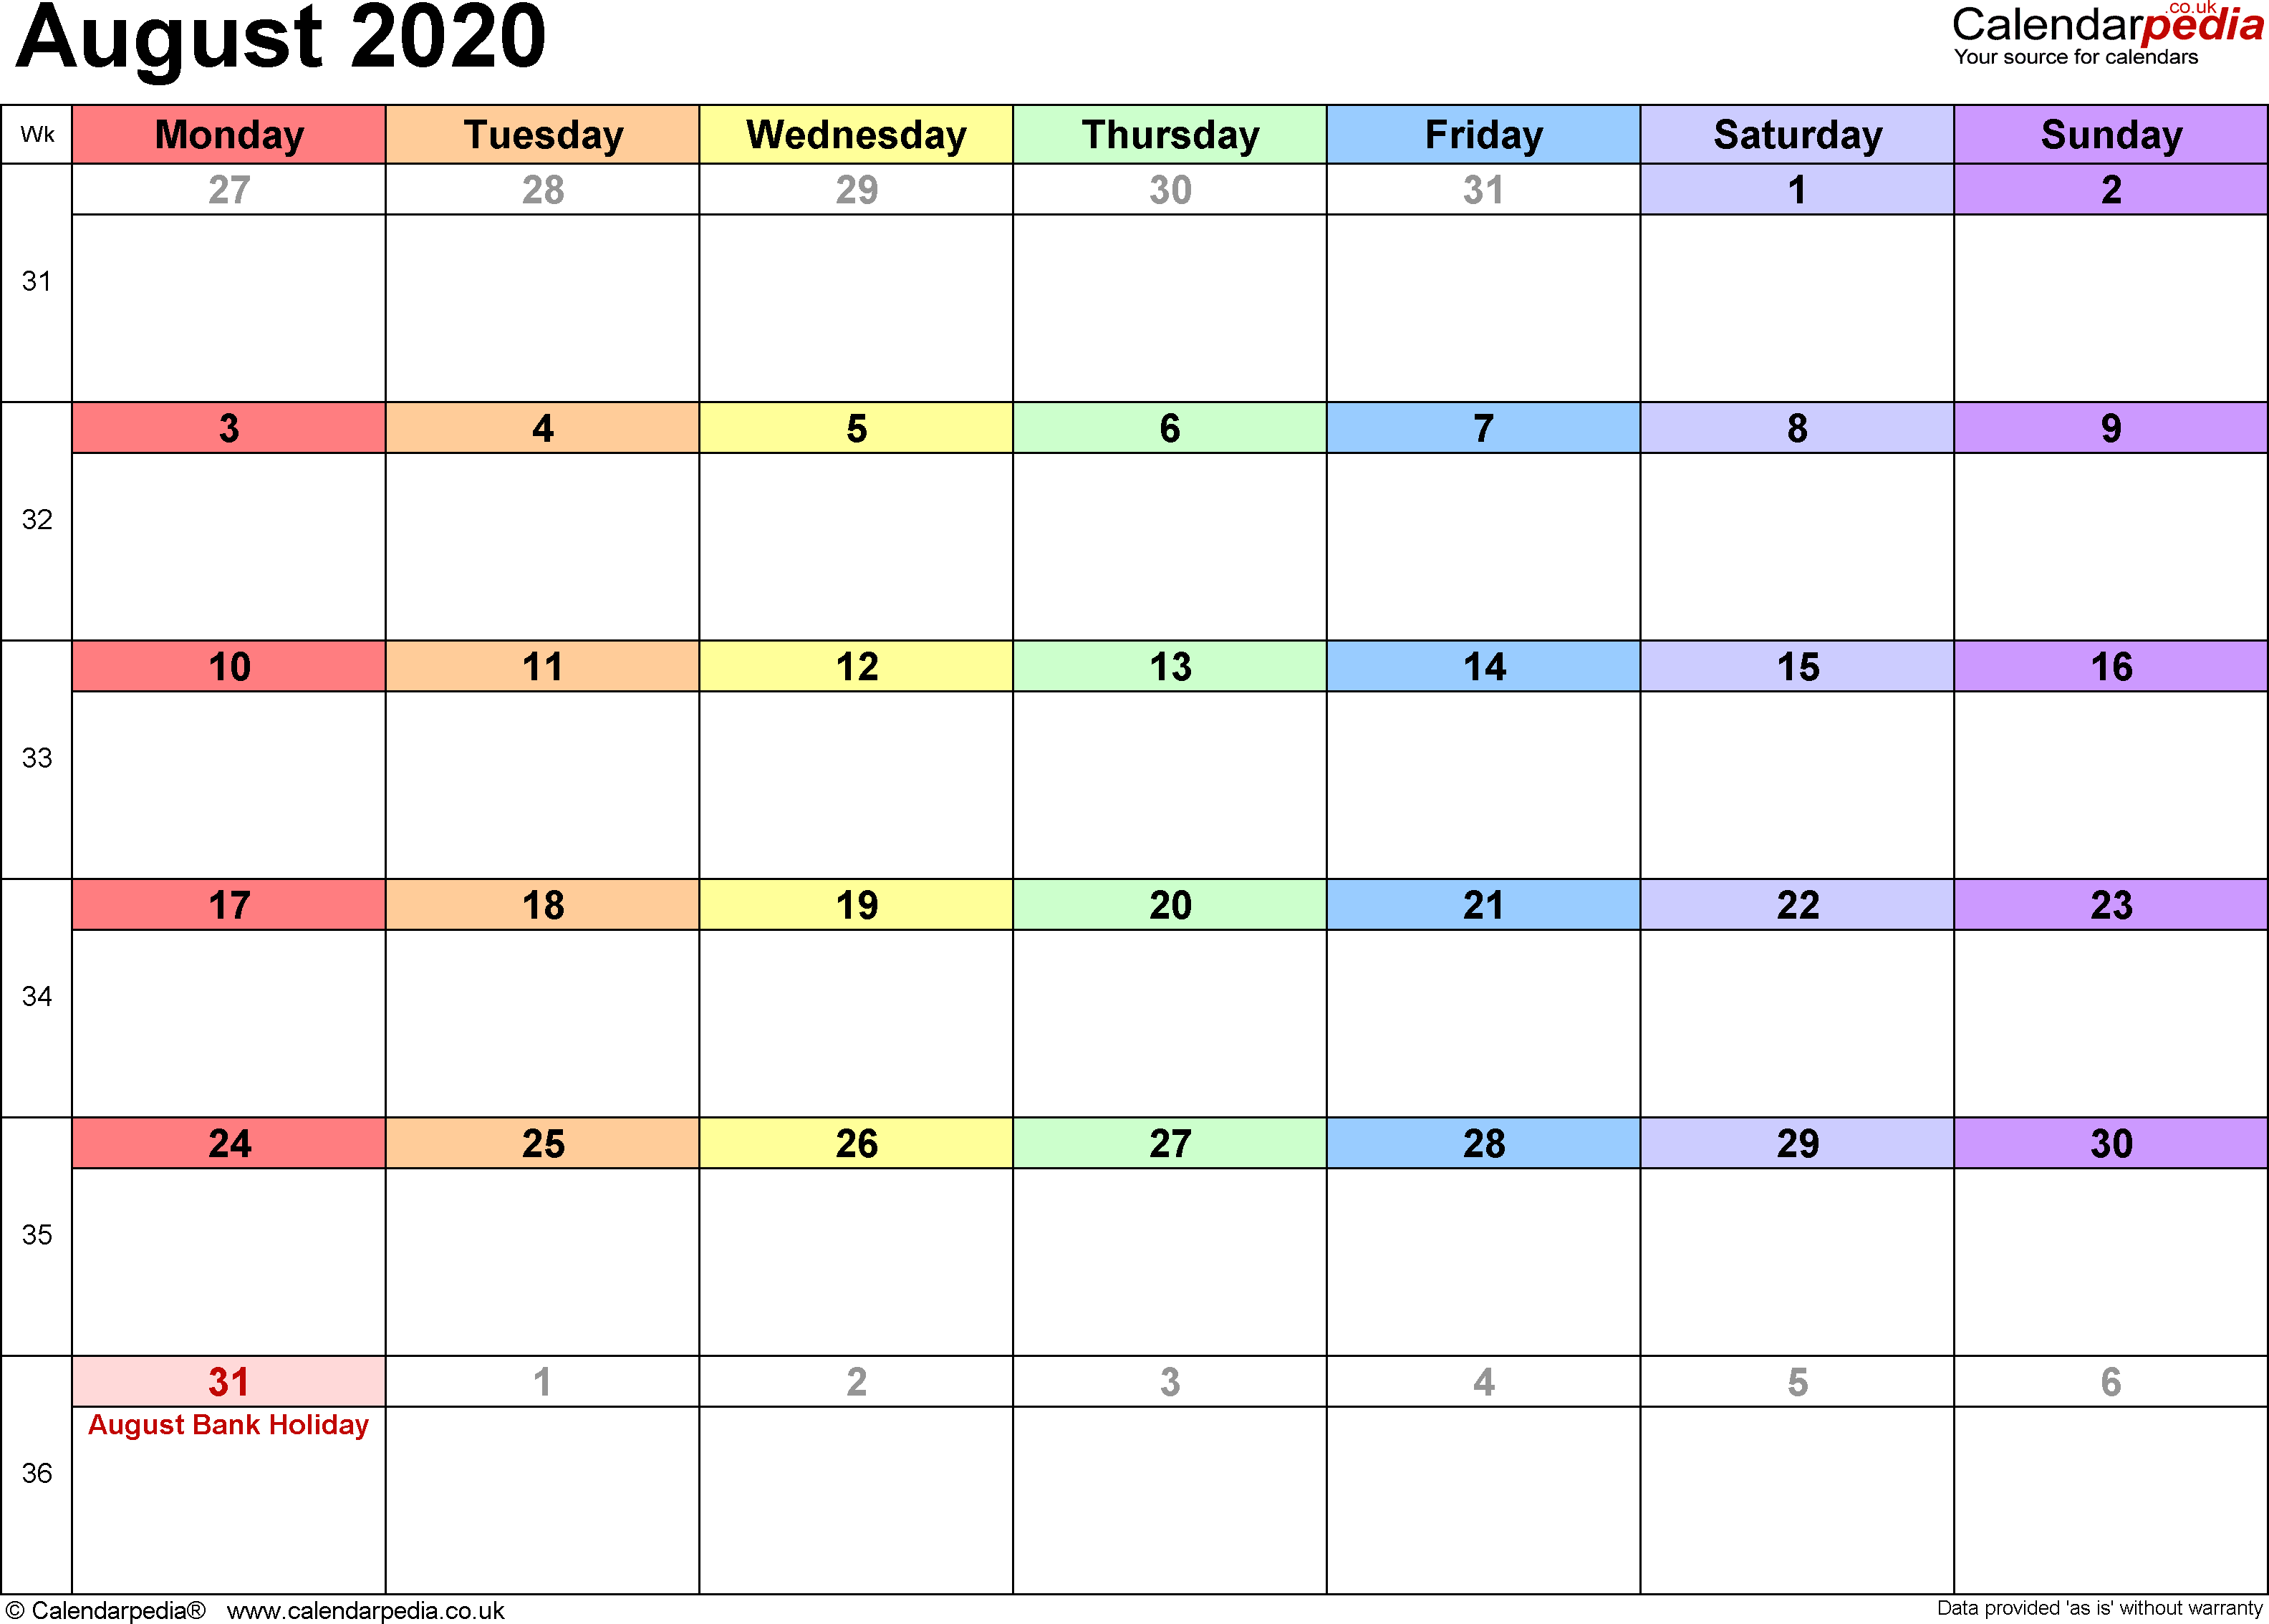 Calendar August 2020, landscape orientation, 1 page, with UK bank holidays and week numbers